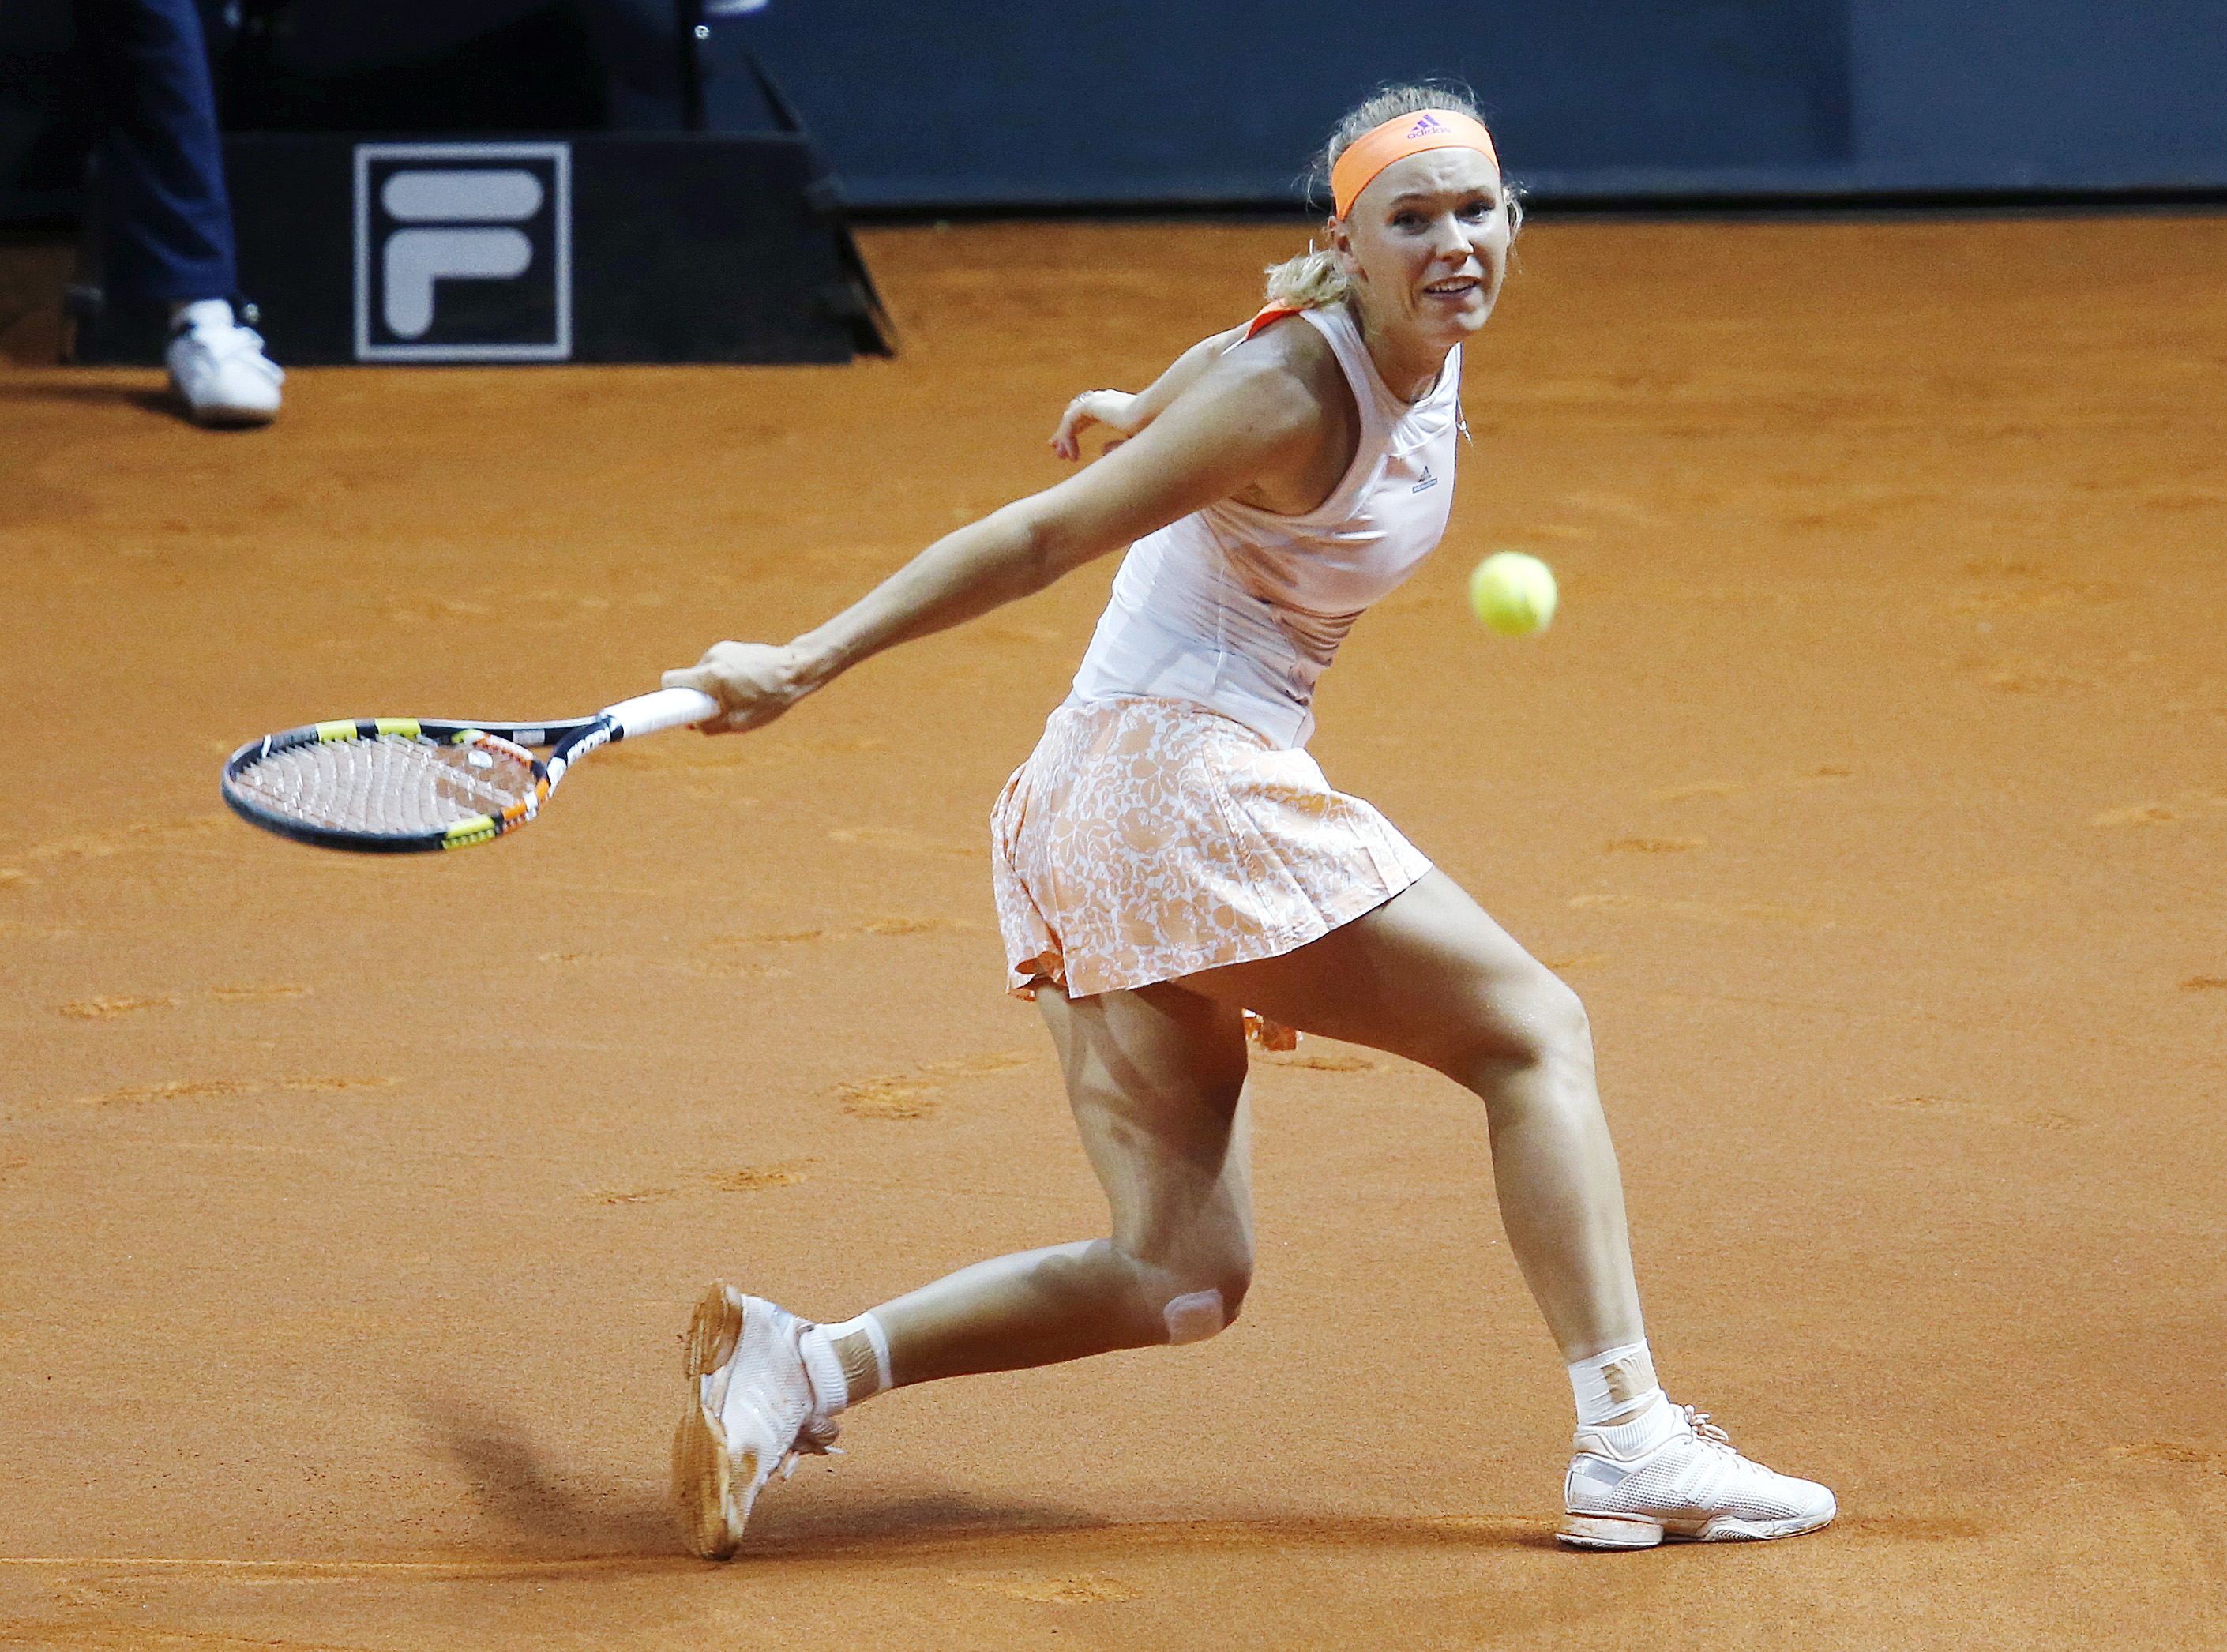 Denmark's Caroline Wozniacki hits a backhand against Germany's Angelique Kerber in their final match at the Porsche Grand Prix tennis tournament in Stuttgart, Germany, Sunday, April 26, 2015. (AP Photo/Michael Probst)